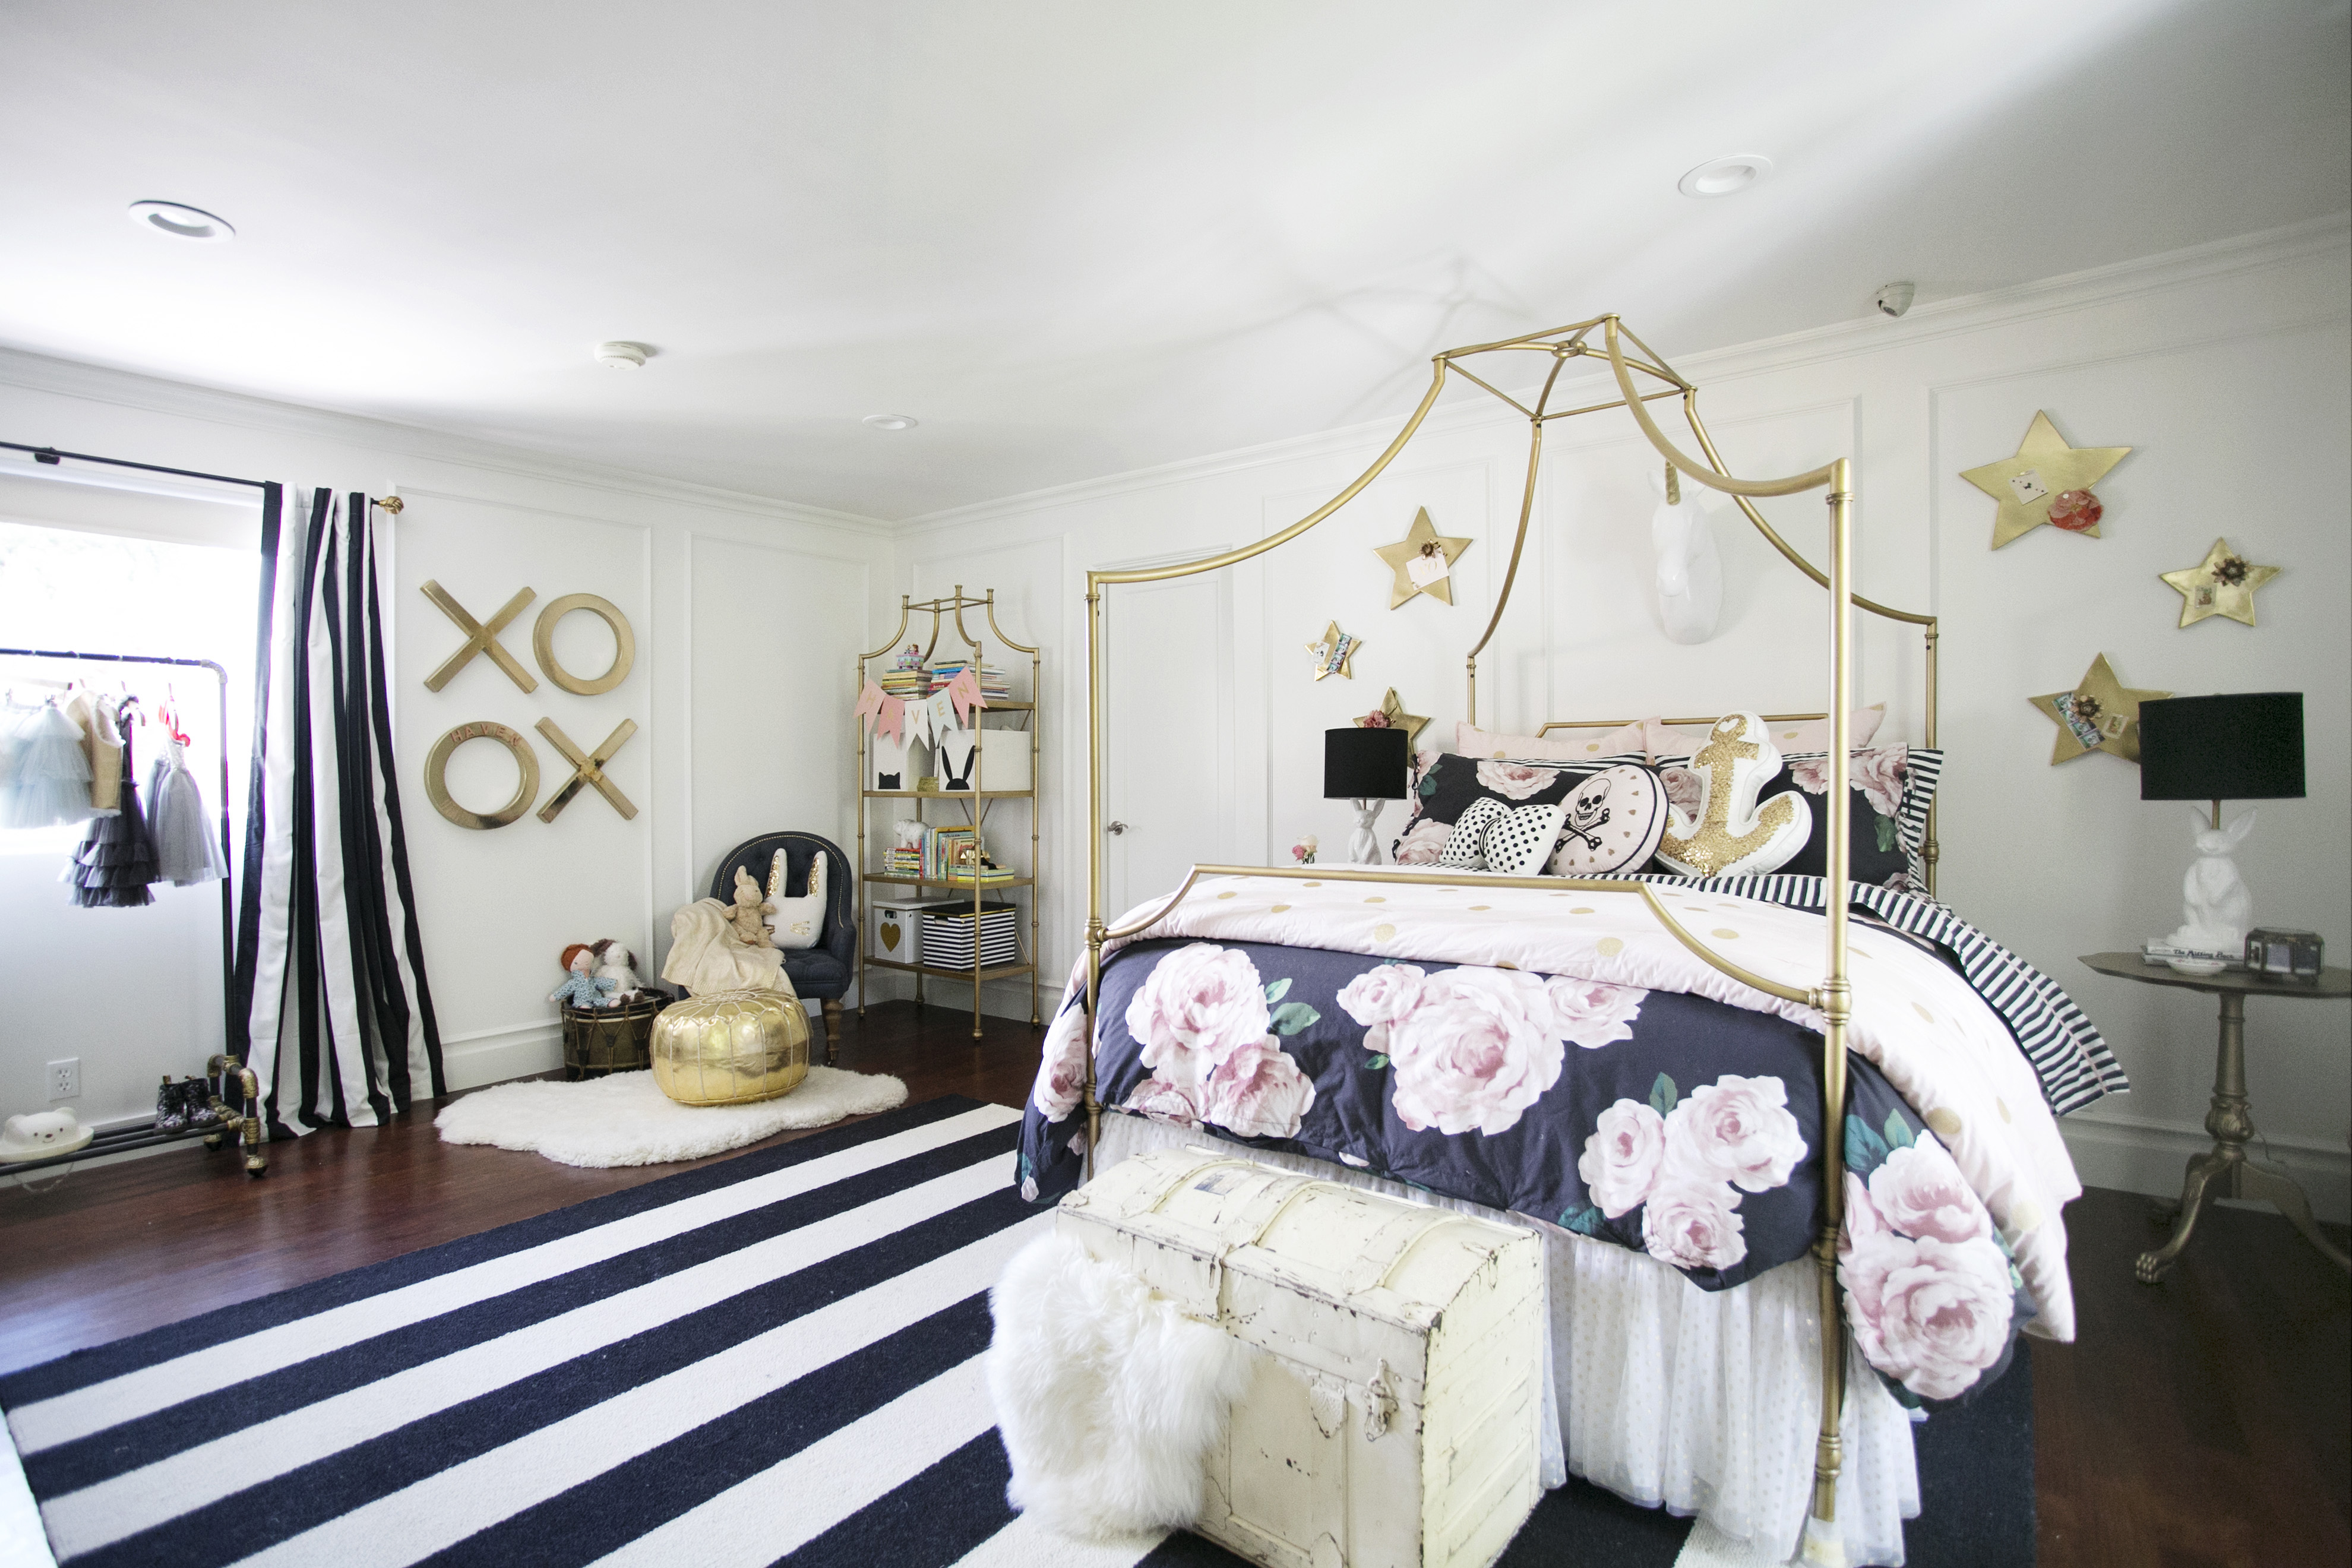 How To Transition A Kid's Room into A Dream Teen Room ... on Teen Rooms For Girls  id=85651